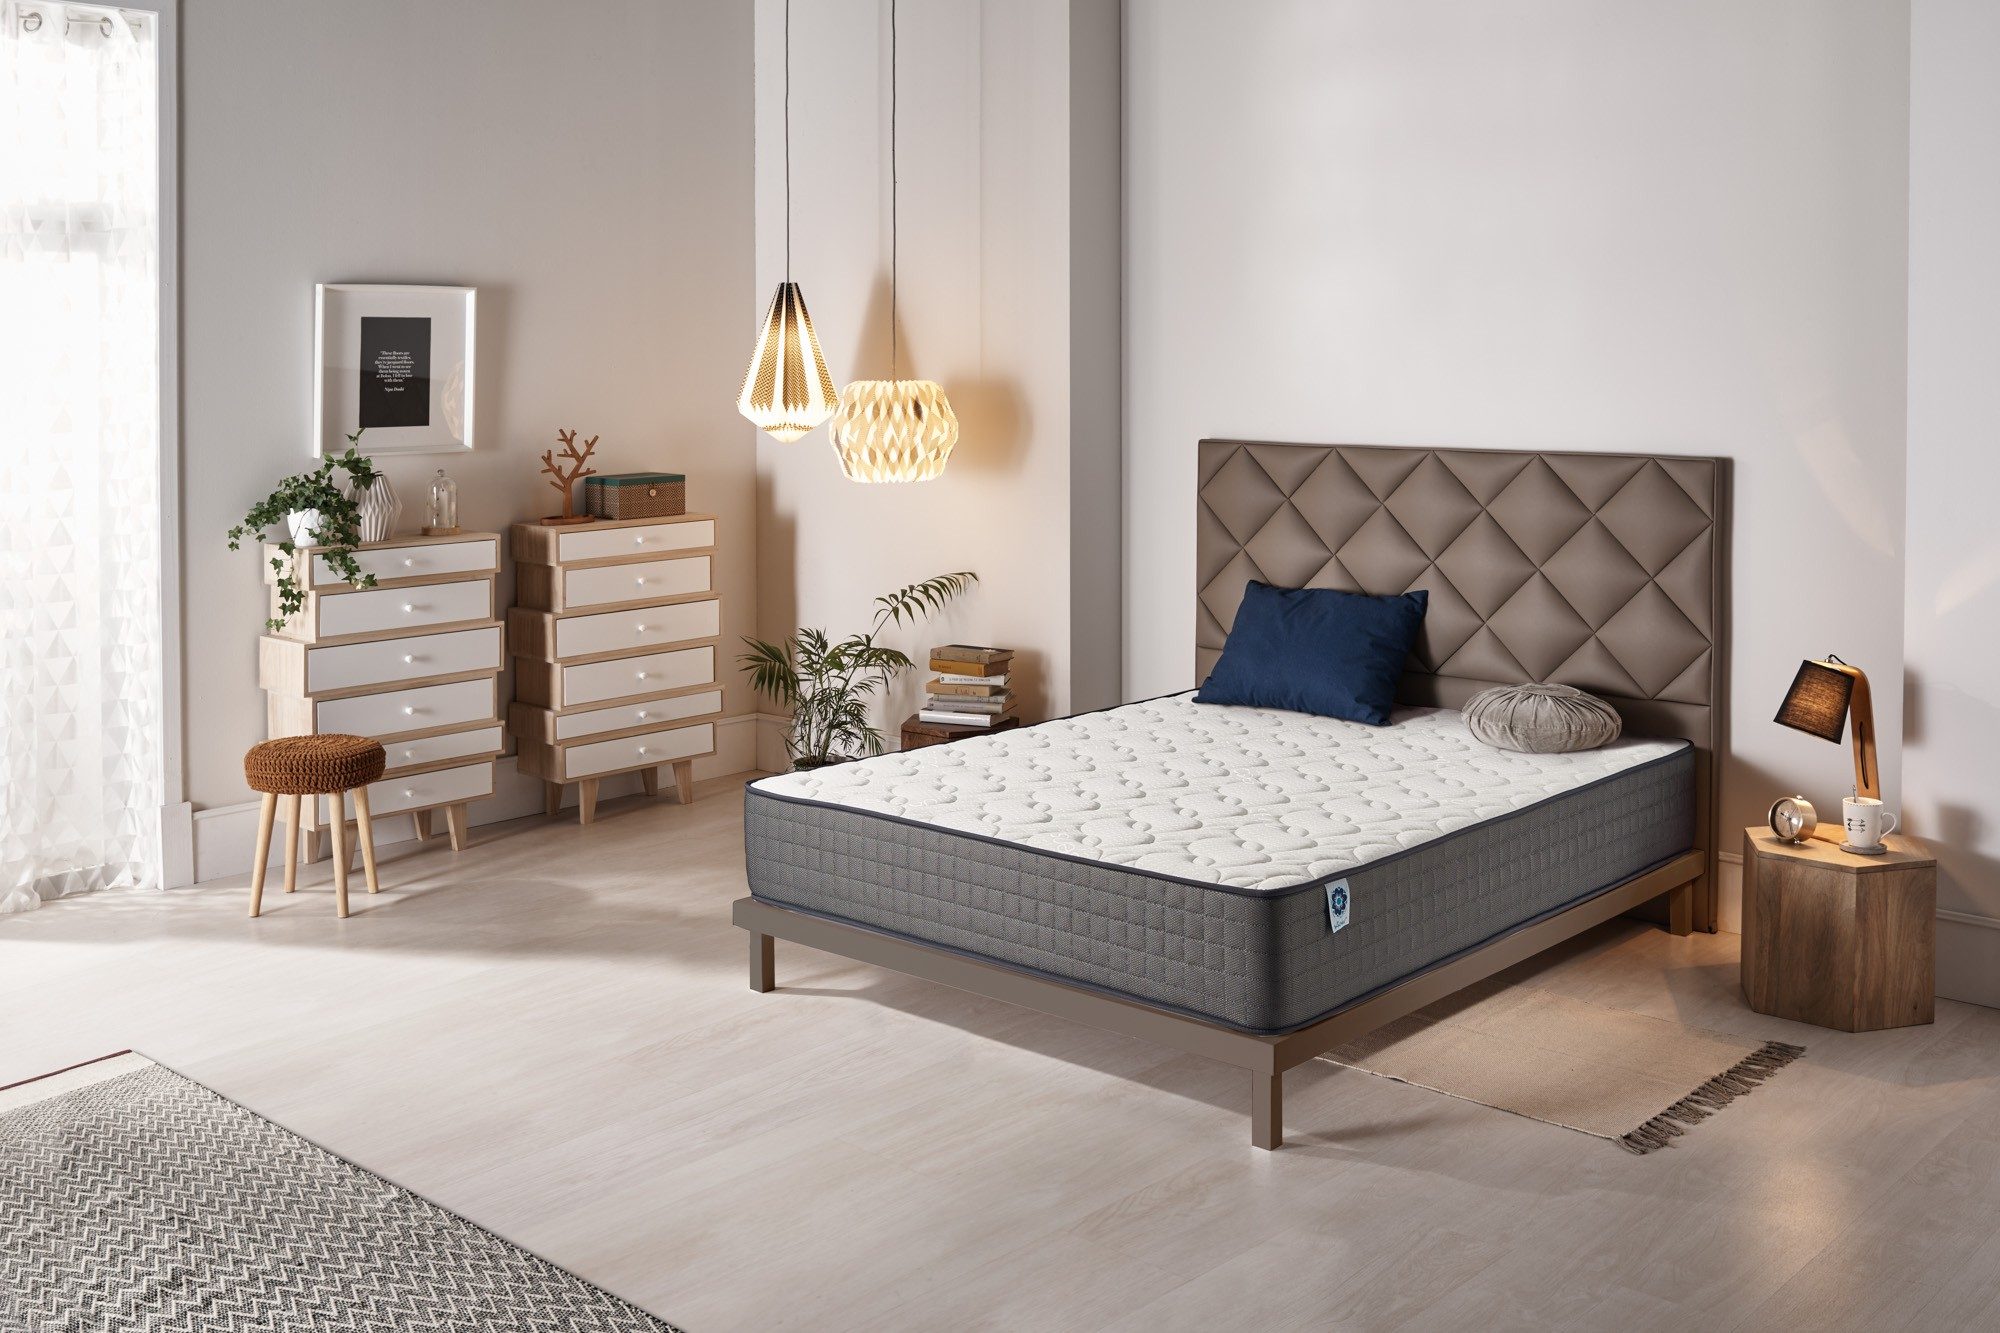 The new Bio Memory memory foam is a new generation high quality viscoelastic foam that offers different comfort zones